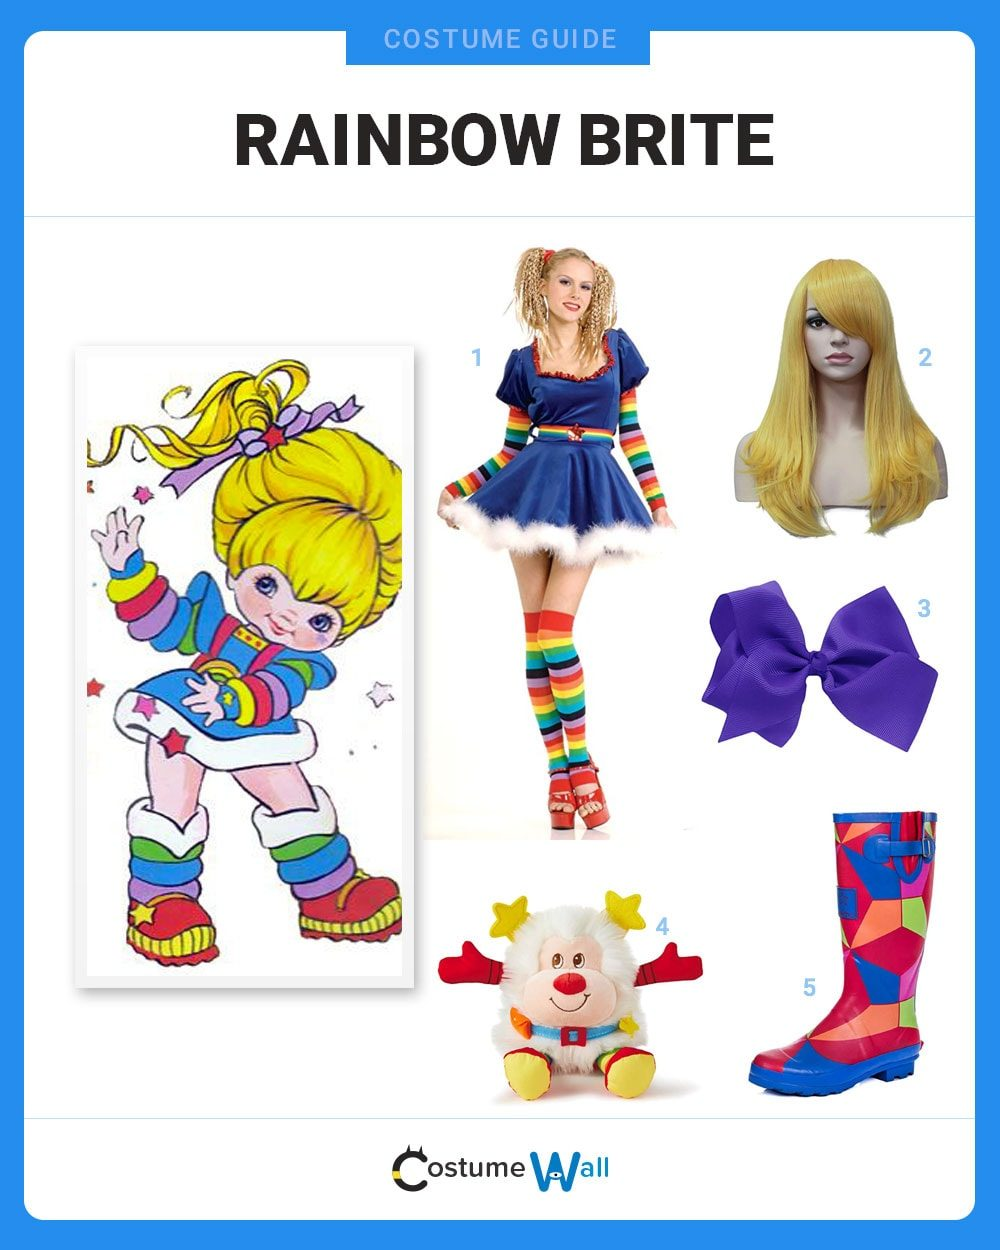 Rainbow Brite Costume Guide